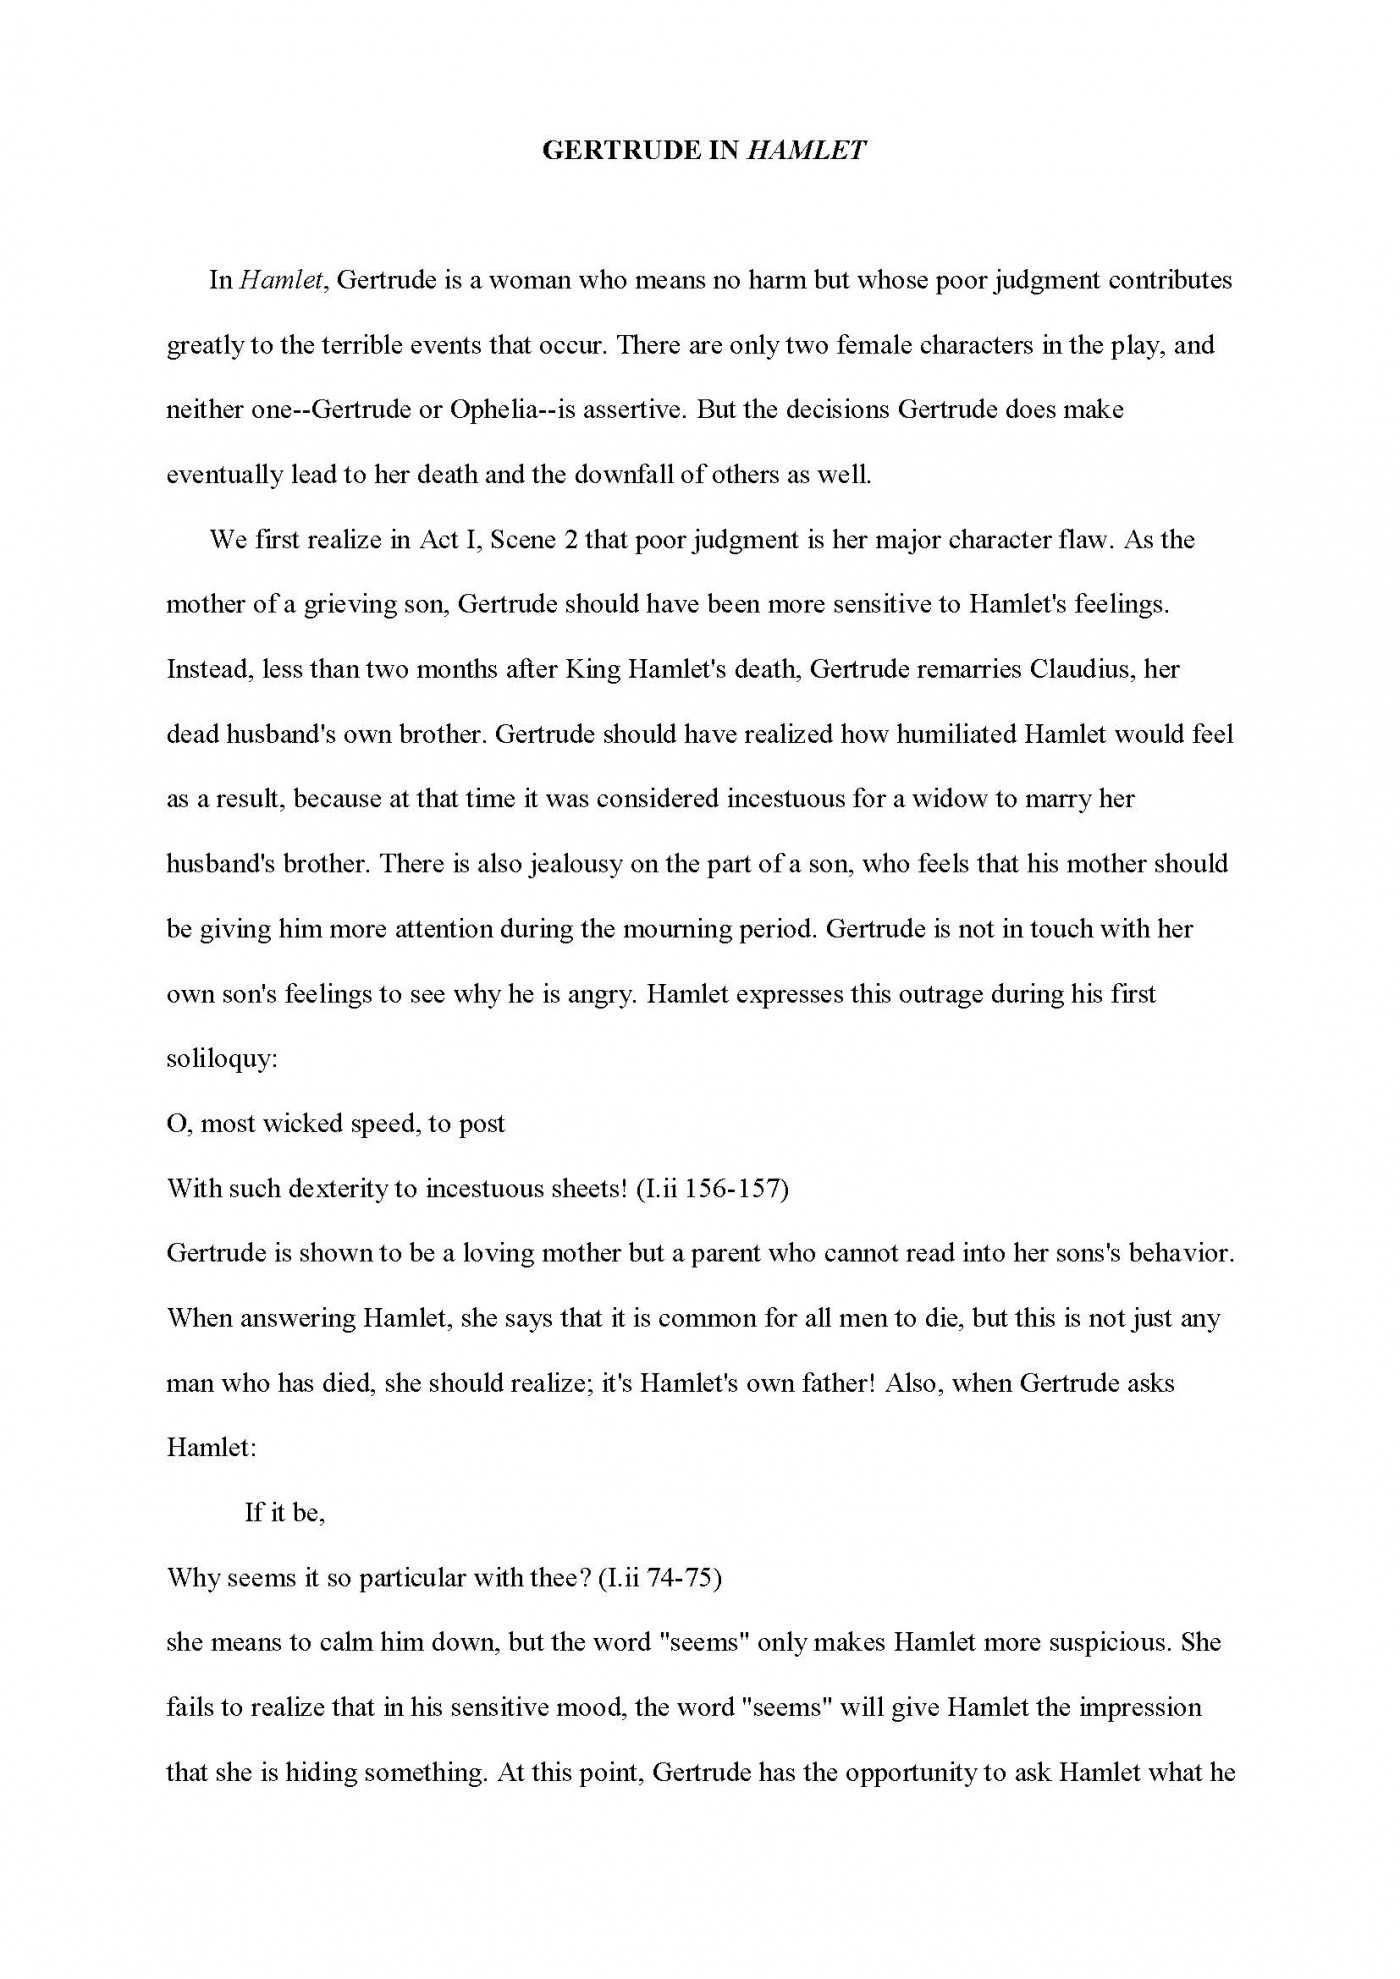 004 Analysis Essay Sample Example How To Write Formidable A Literary Good English Literature Introduction Conclusion Grade 4 1400